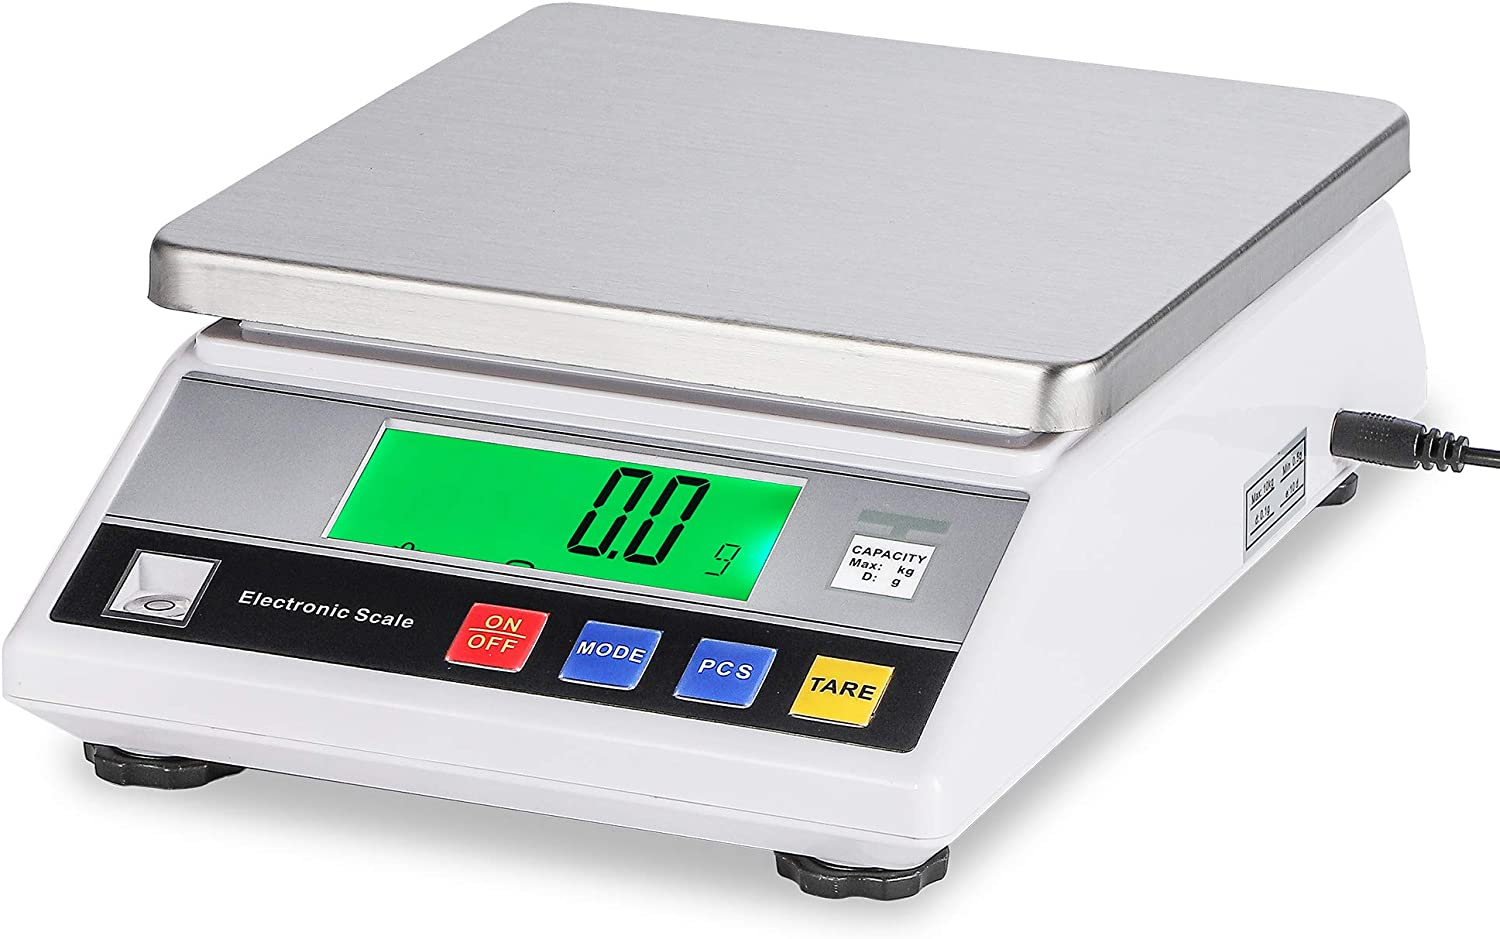 Bonvoisin Lab Scale 5000gx0.1g Counting Scale Digital Analytical Balance Accurate Electronic Scale CE Certification Laboratory Balance Precision Scale Jewelry Gold Scale (5000g, 0.1g)